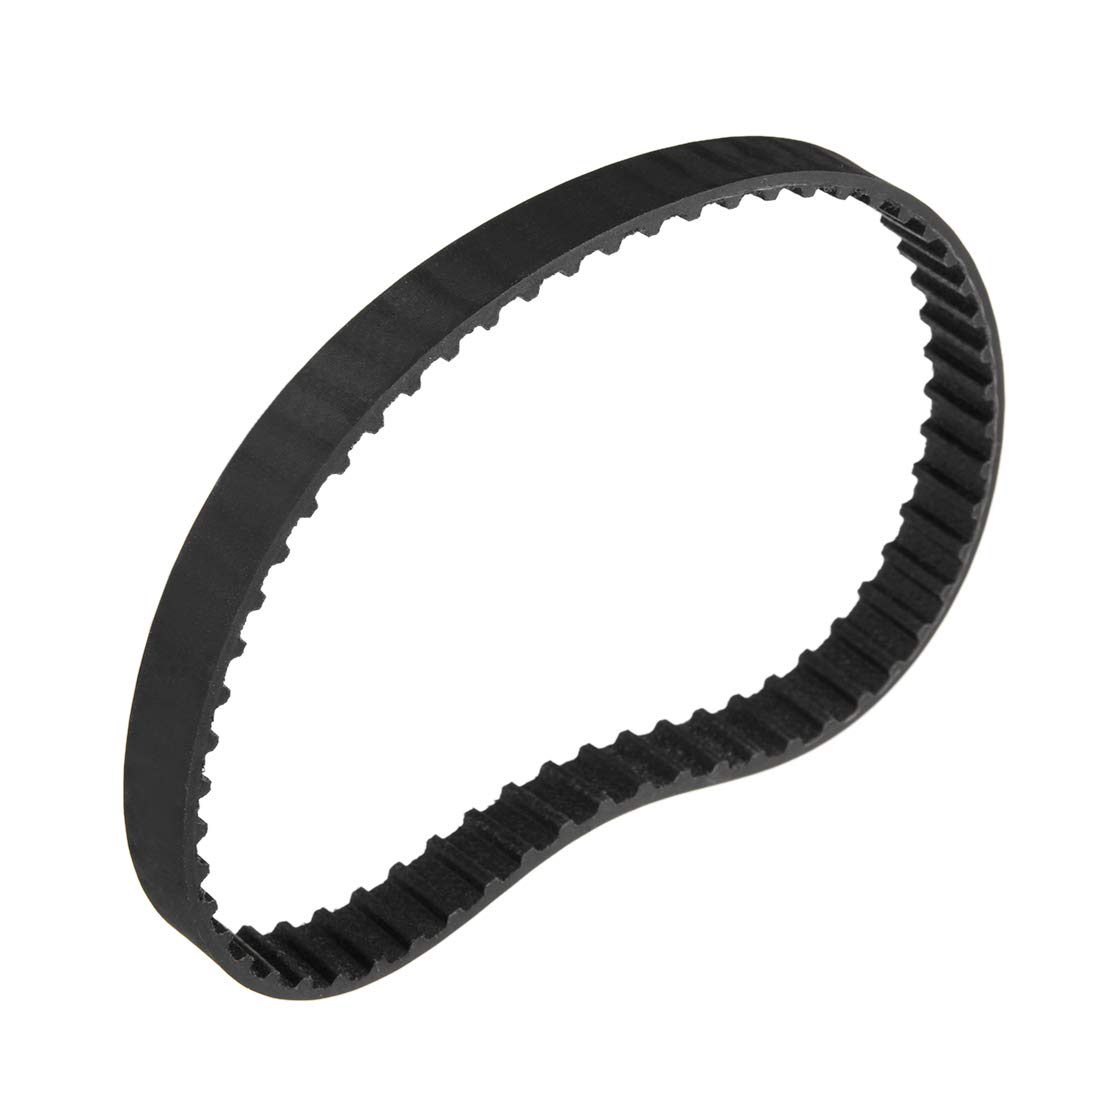 uxcell 60XL Rubber Timing Belt Synchronous Closed Loop Timing Belt Pulleys 10mm Wide